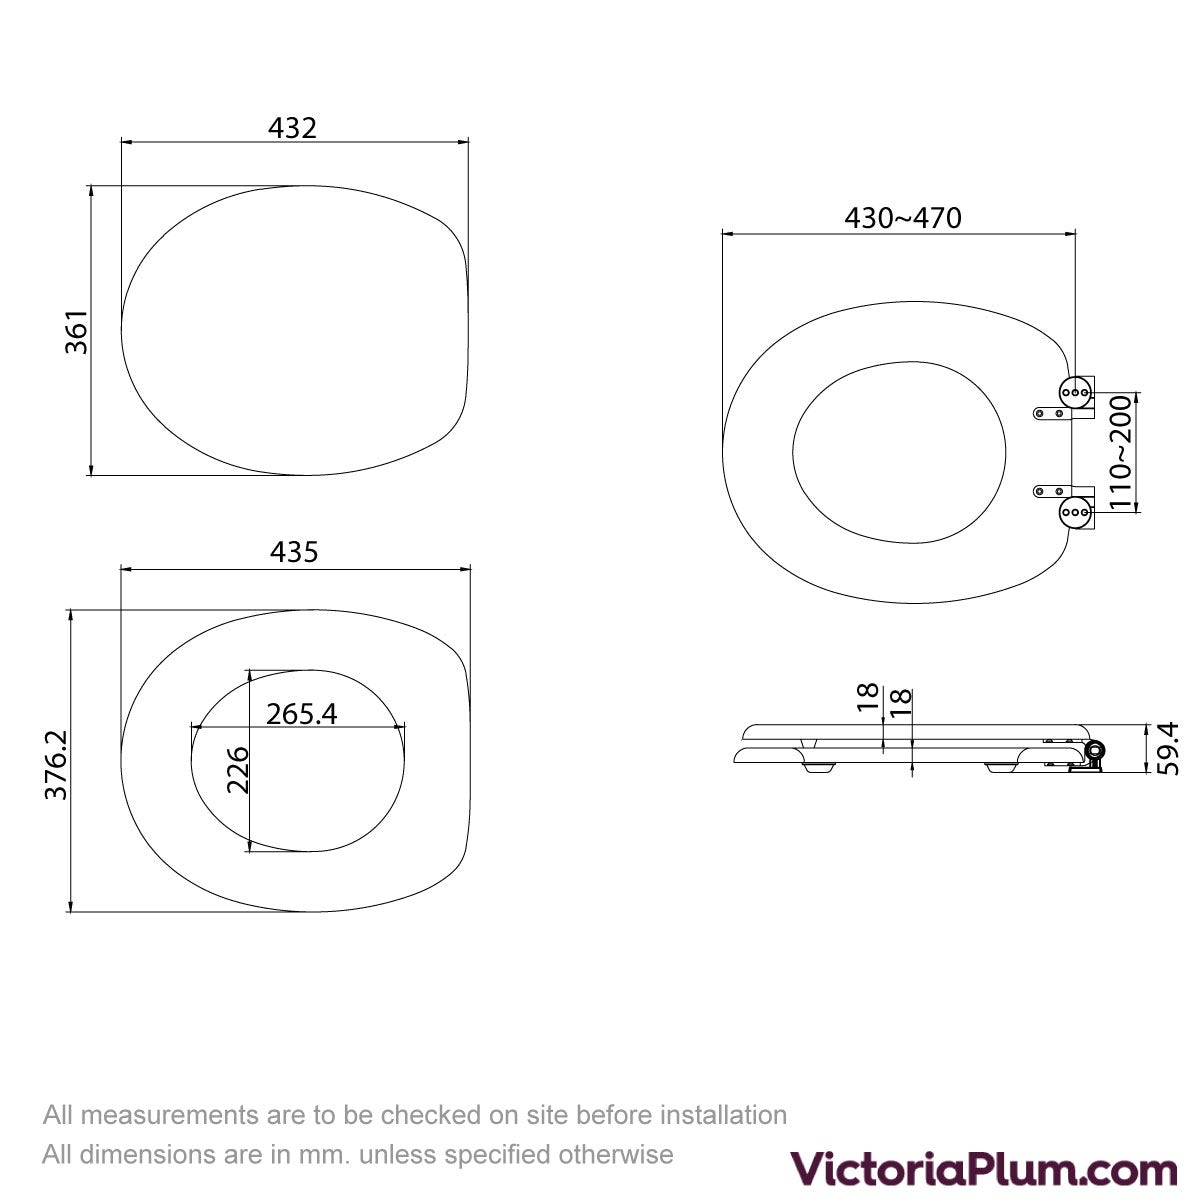 Dimensions for Sandy shells acrylic toilet seat with soft close quick release hinge